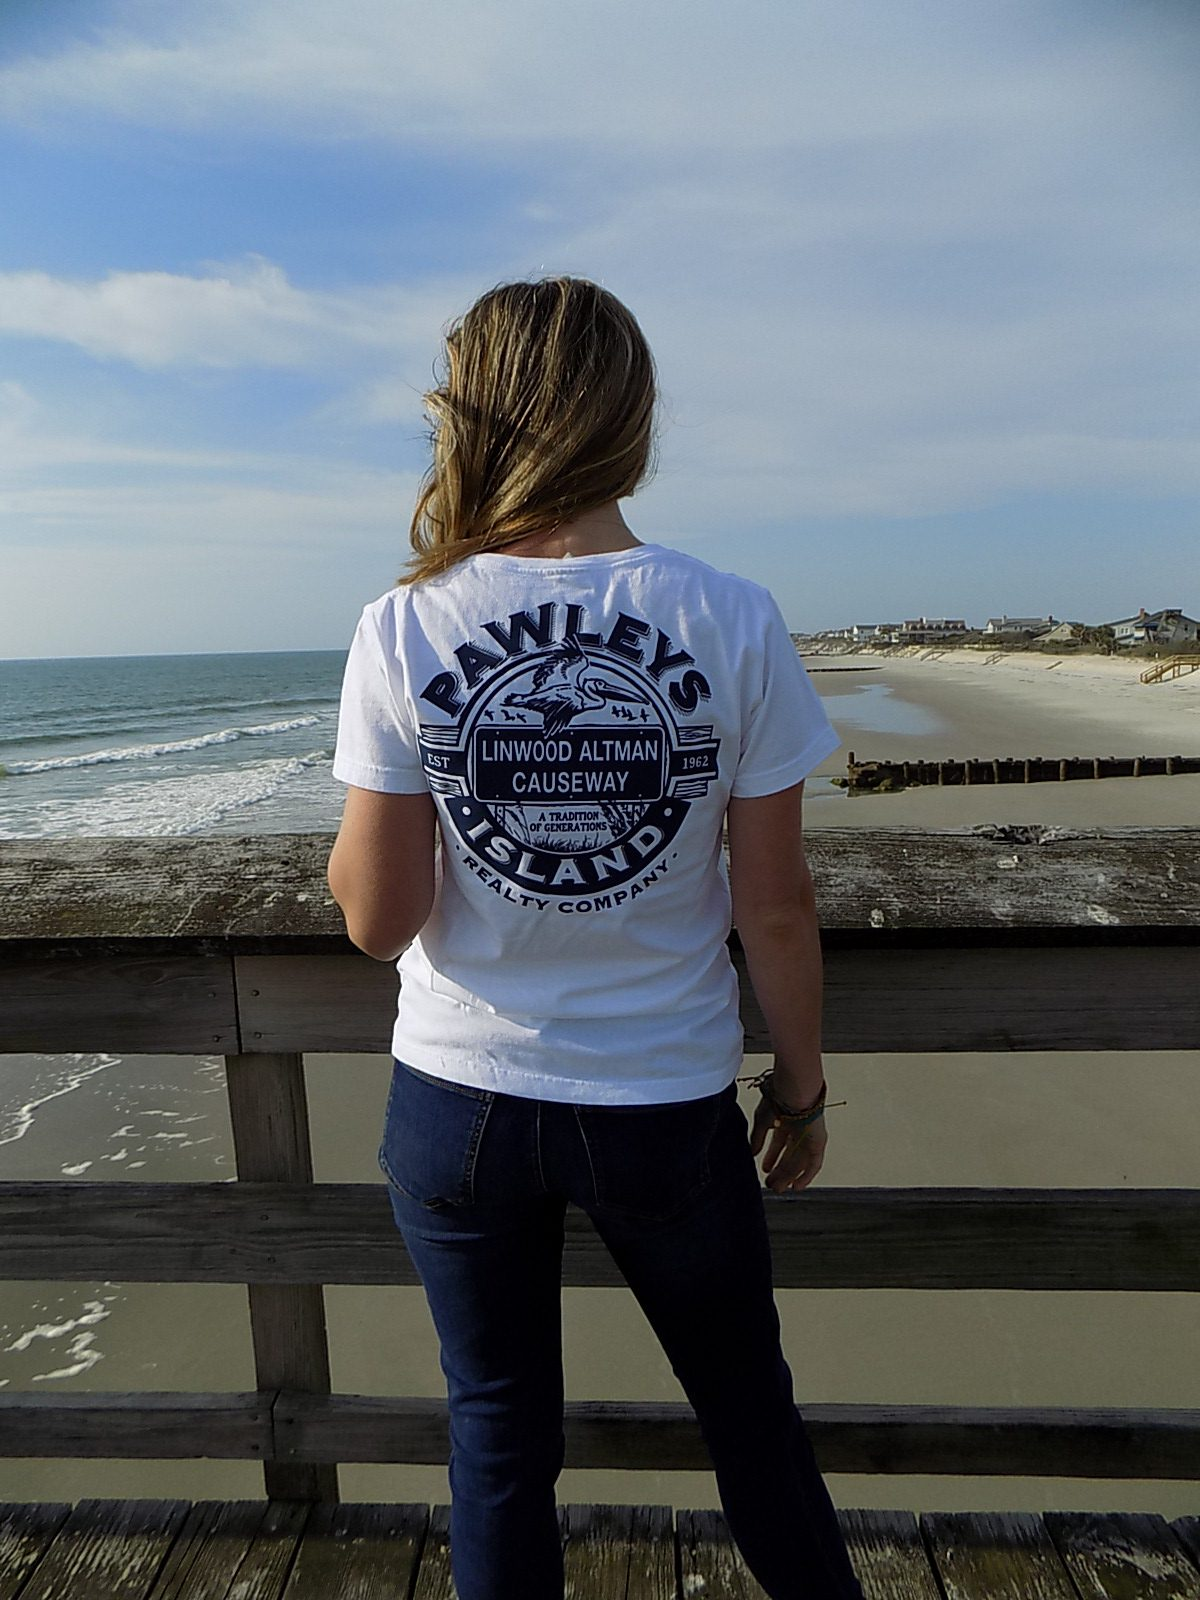 1bf4b54dc712 Each year we will have new t-shirts for sale with different artwork to  commemorate the year with Pawleys Island Realty. Come to PIR and purchase  yours ...